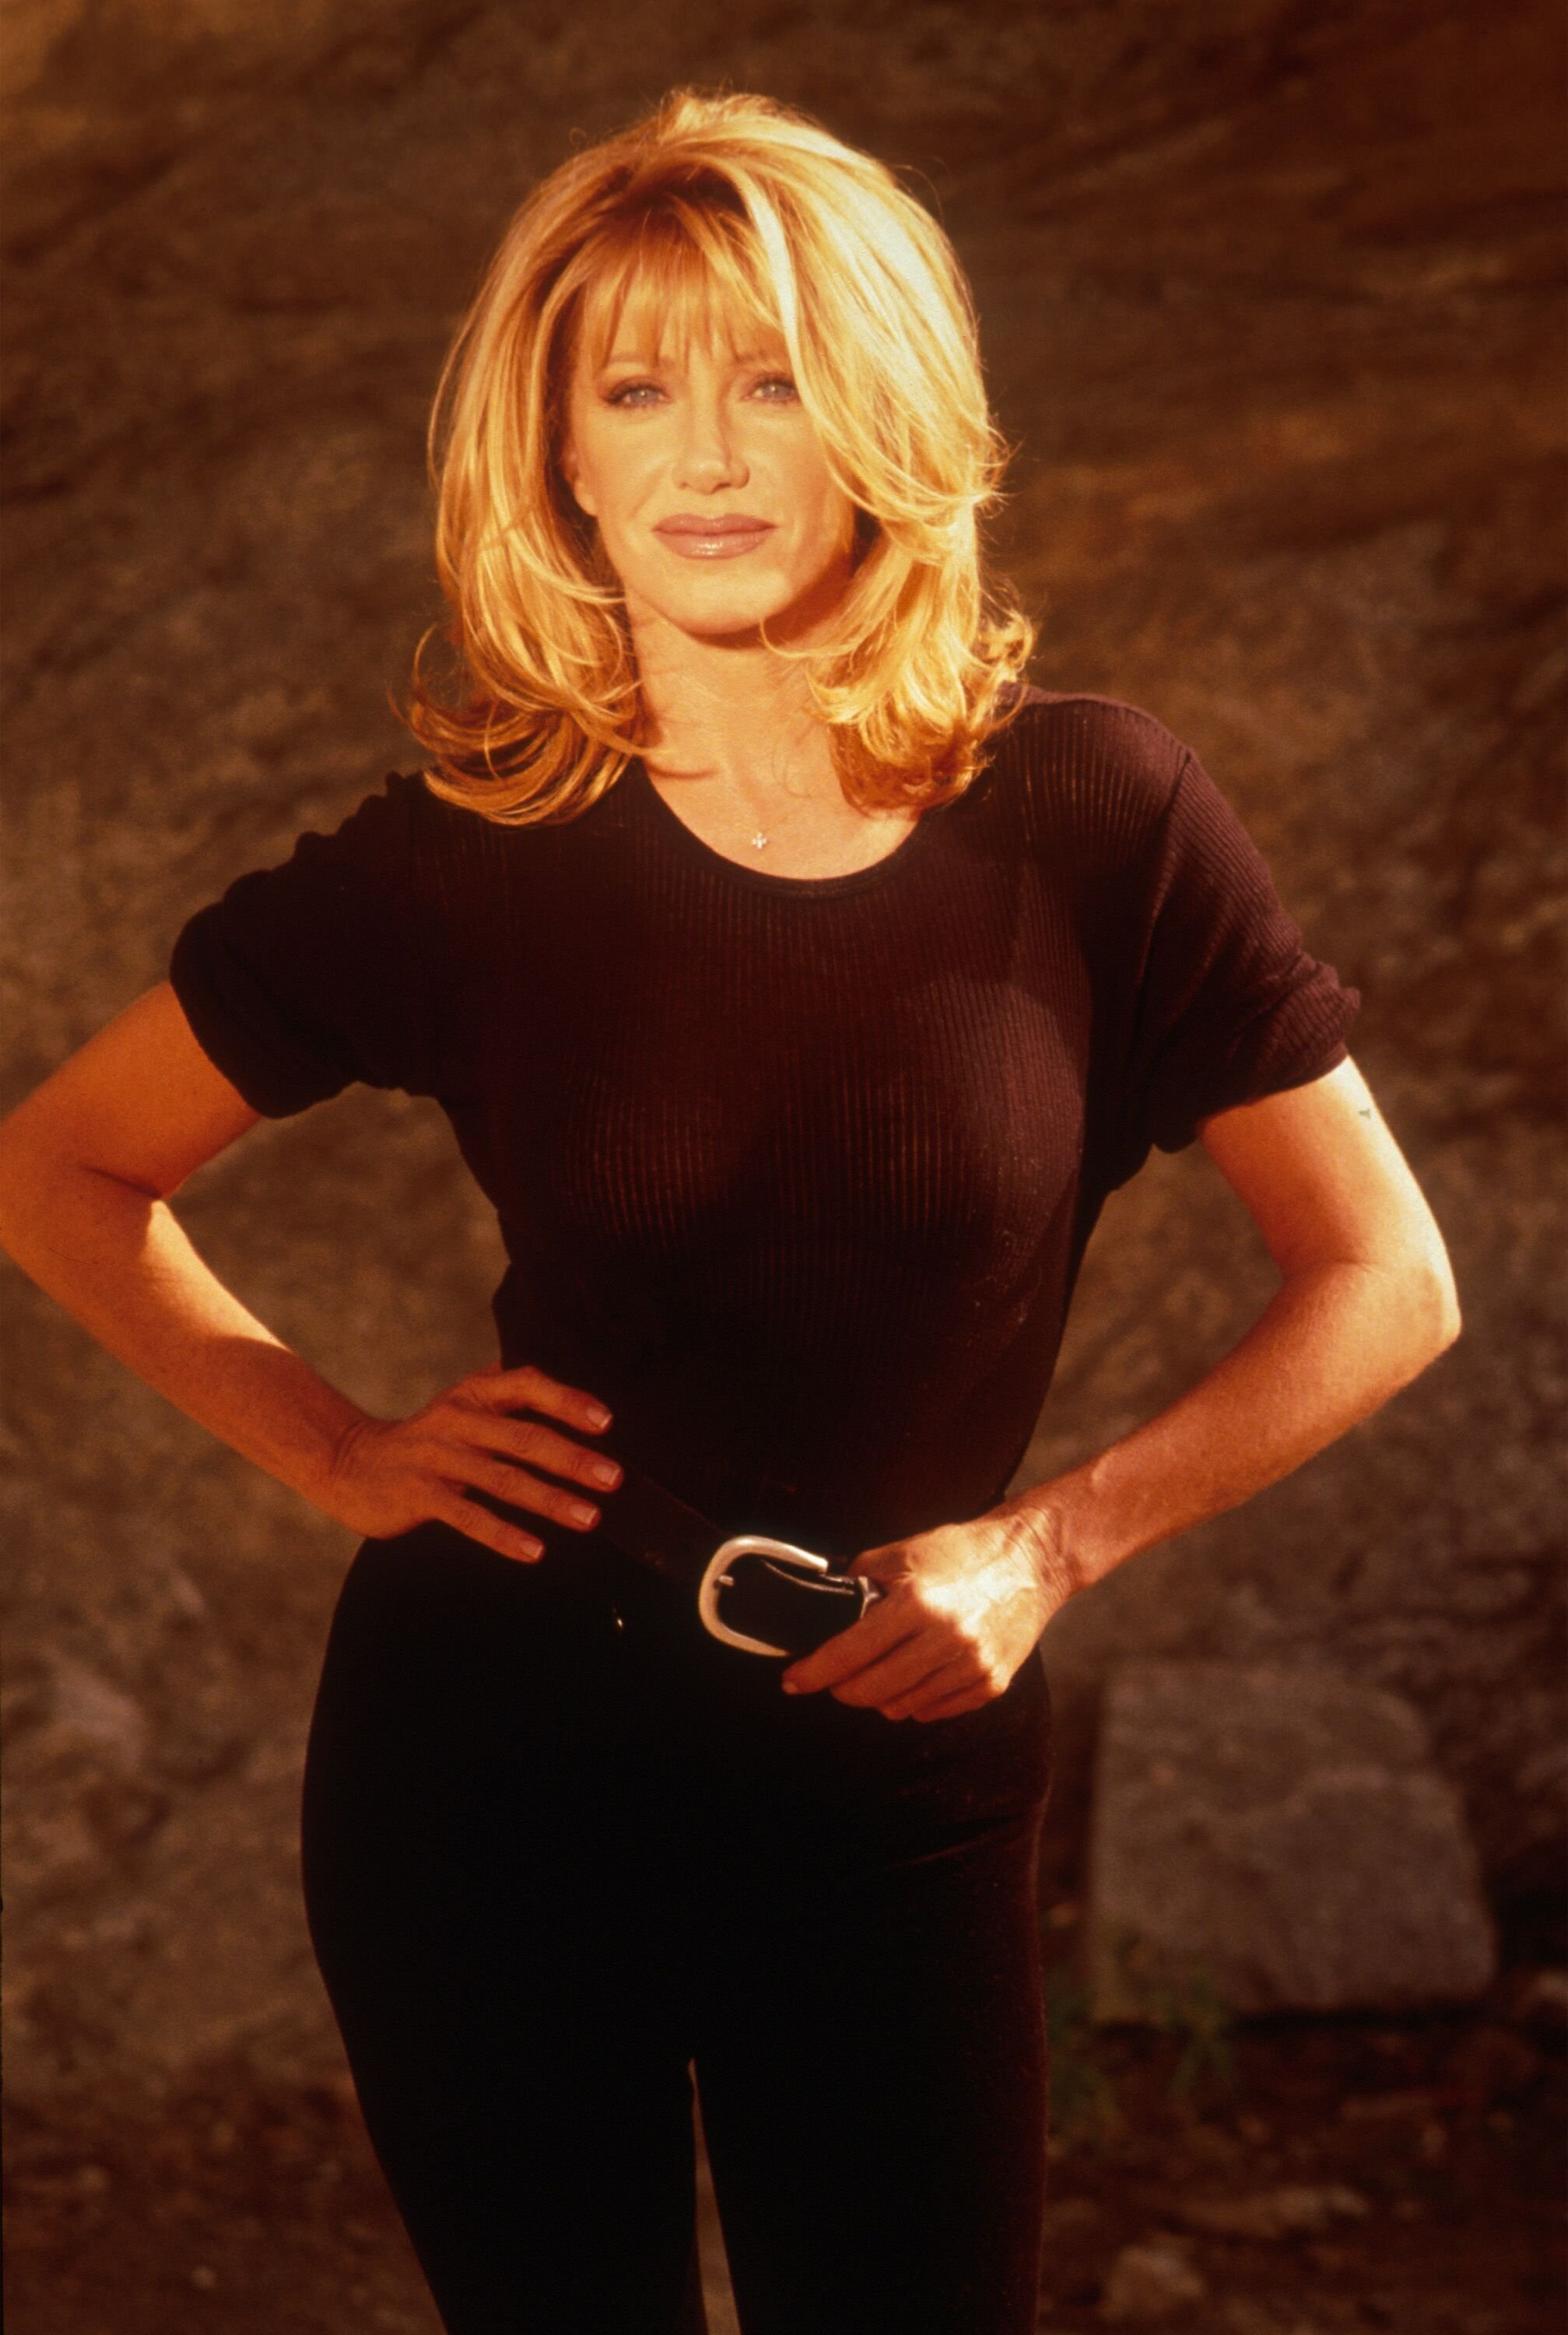 Suzanne Somers poses for a portrait on October 15, 1997 in Los Angeles ! Source: Getty Images